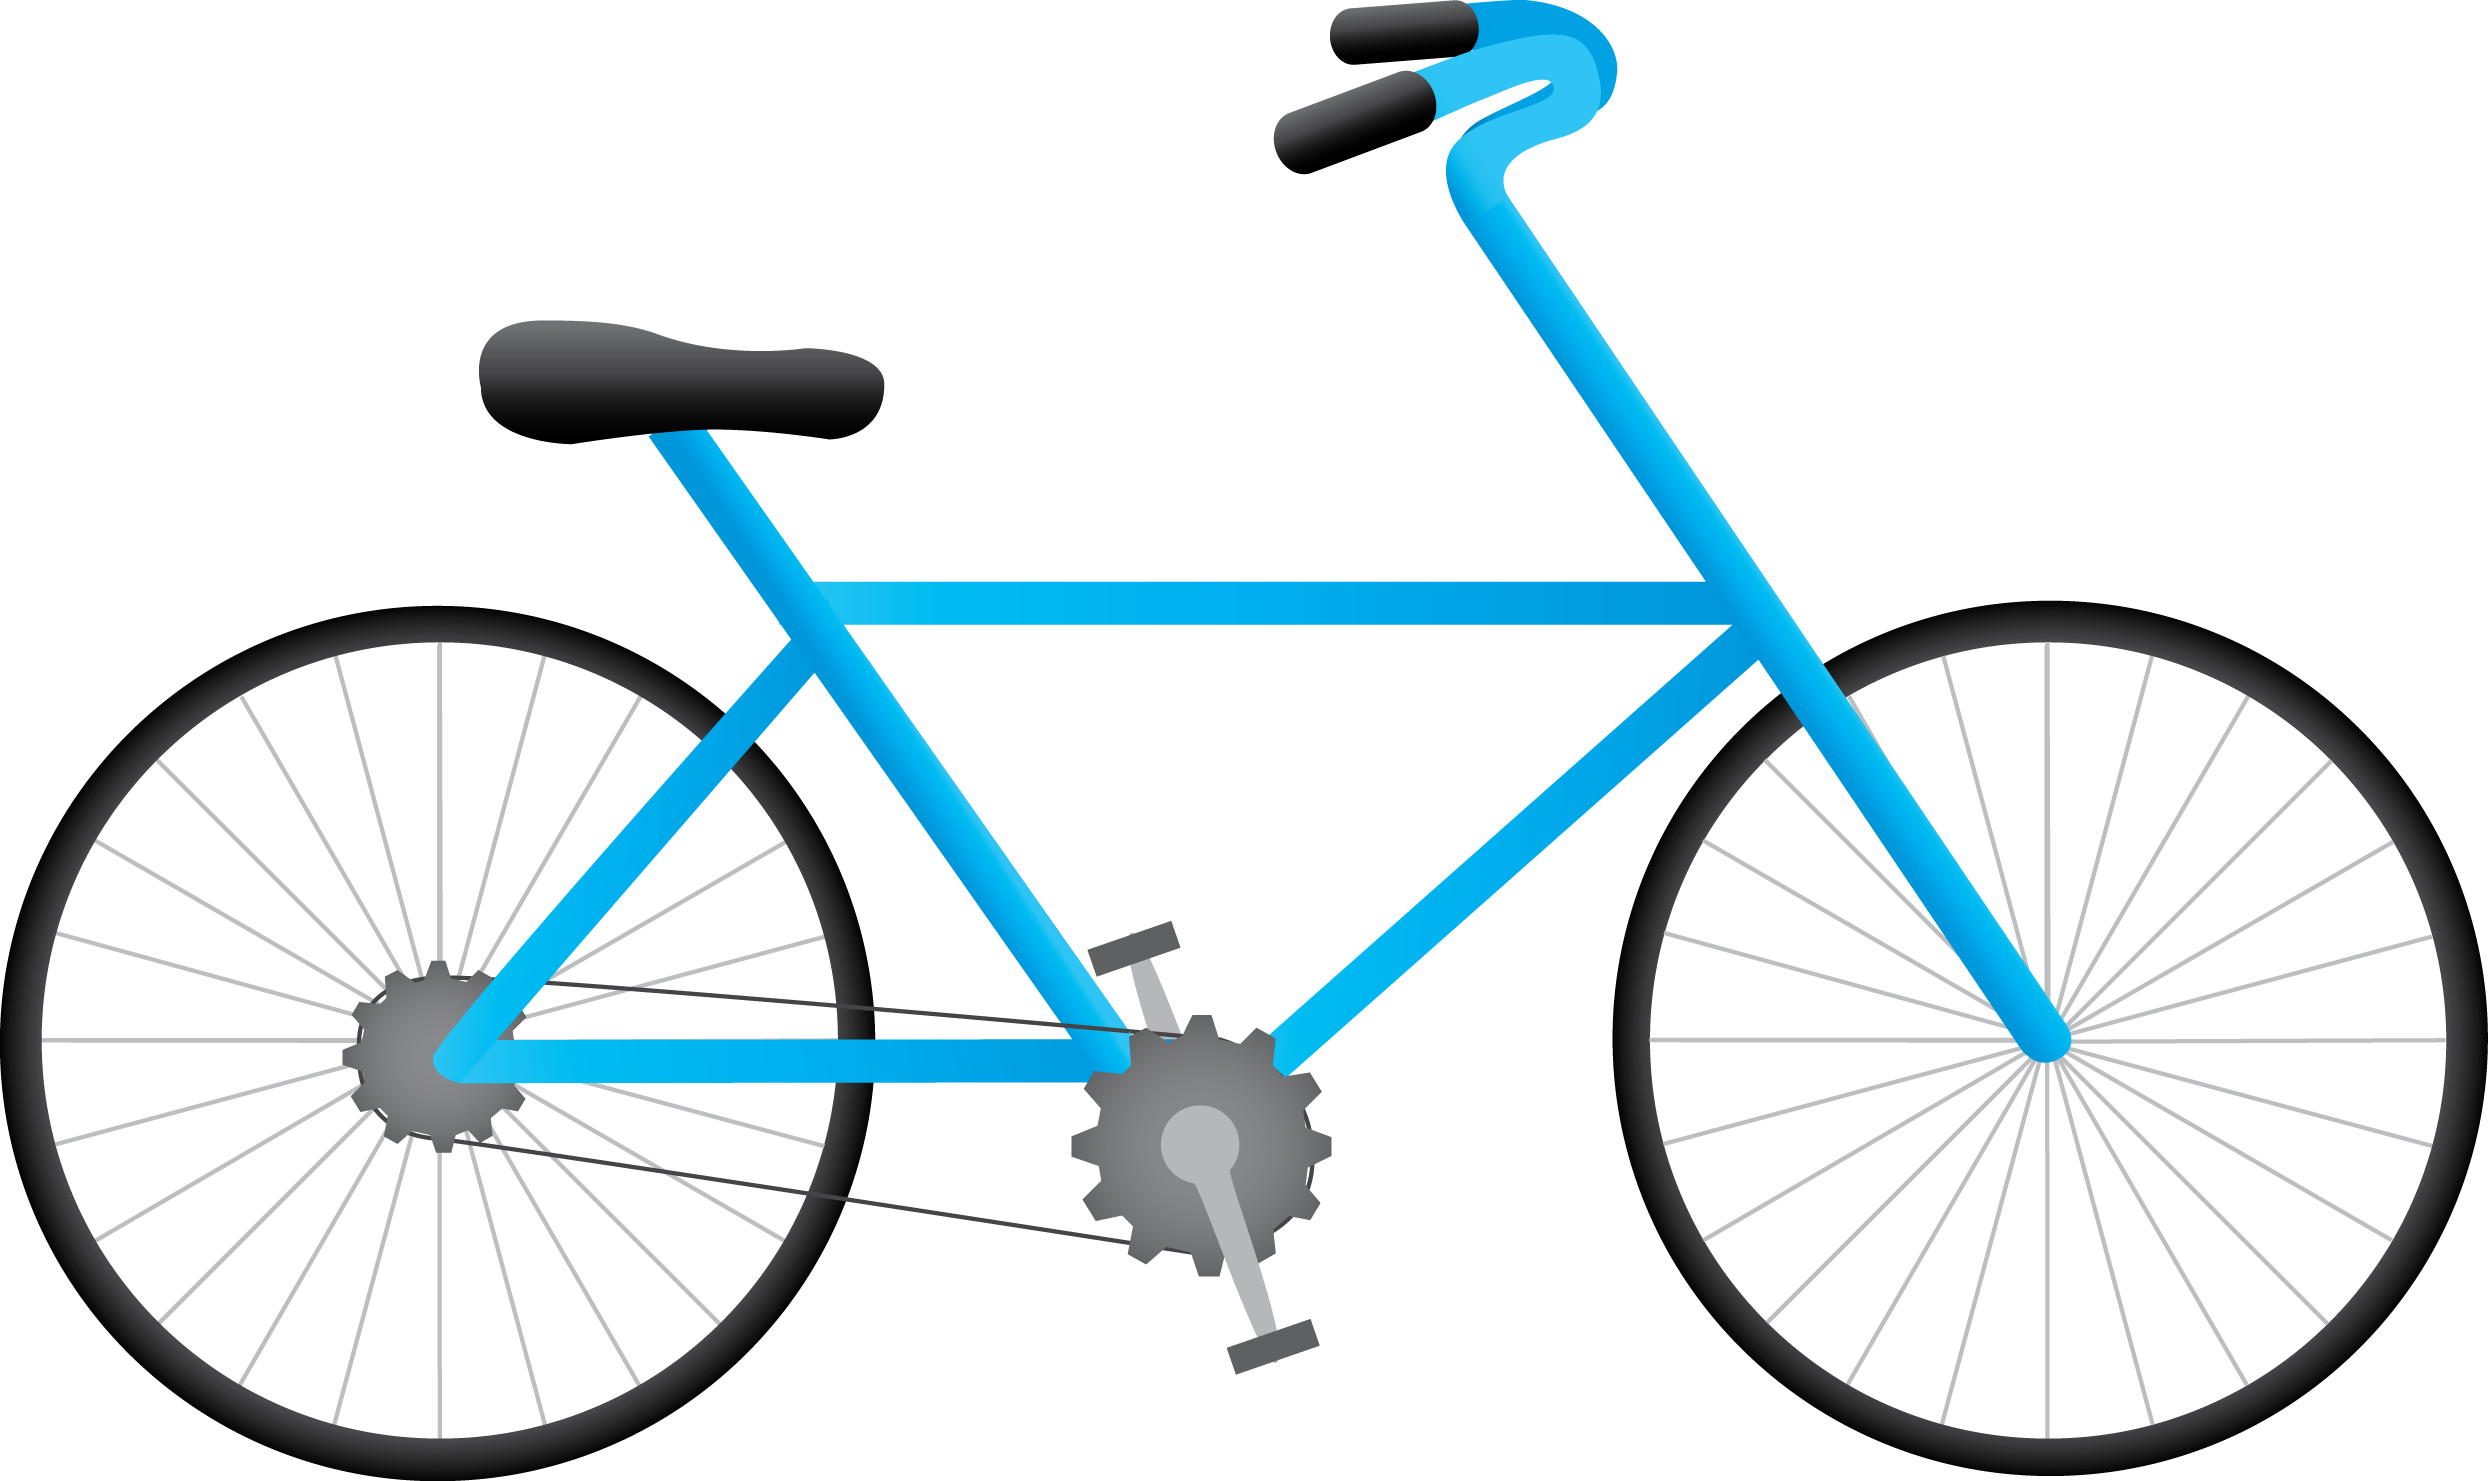 Bicycle clipart transparent background. Png images free bikes